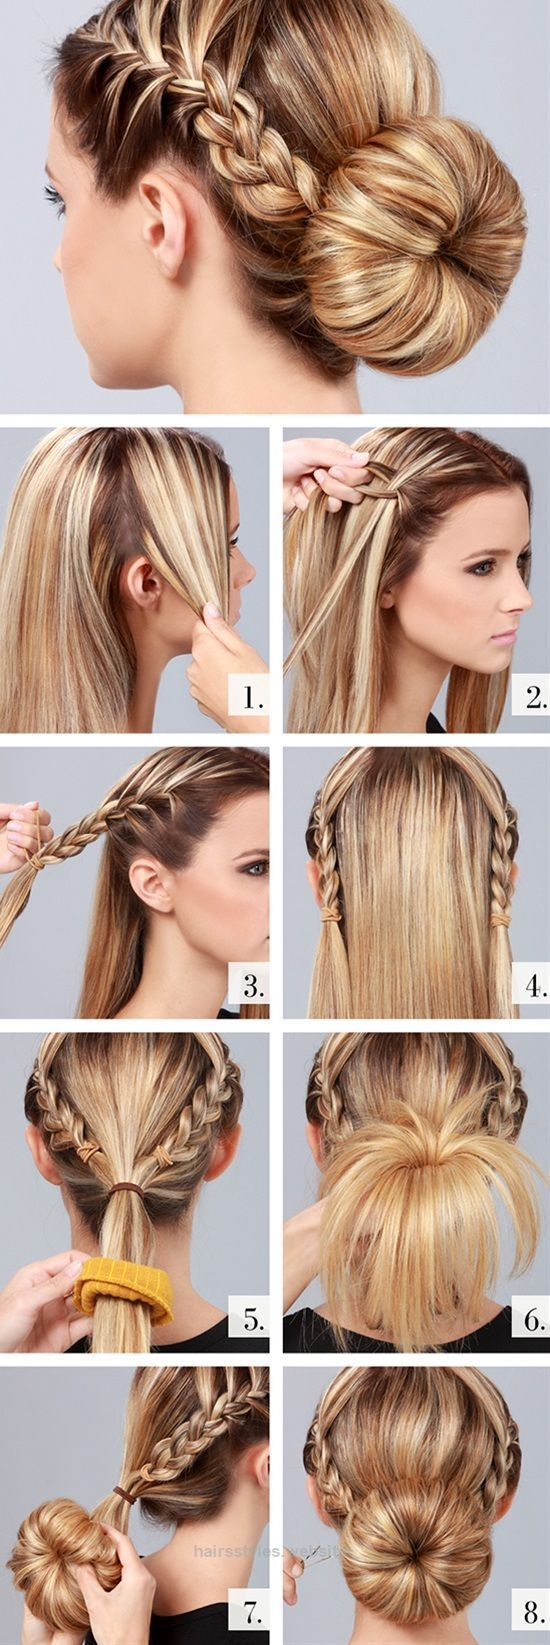 Outstanding 16 Easy Updo Hair Tutorials for the Season – Pretty Designs The post 16 Easy Updo Hair Tutorials for the Season – Pretty Designs… appeared first on Haircuts and Hairstyles .